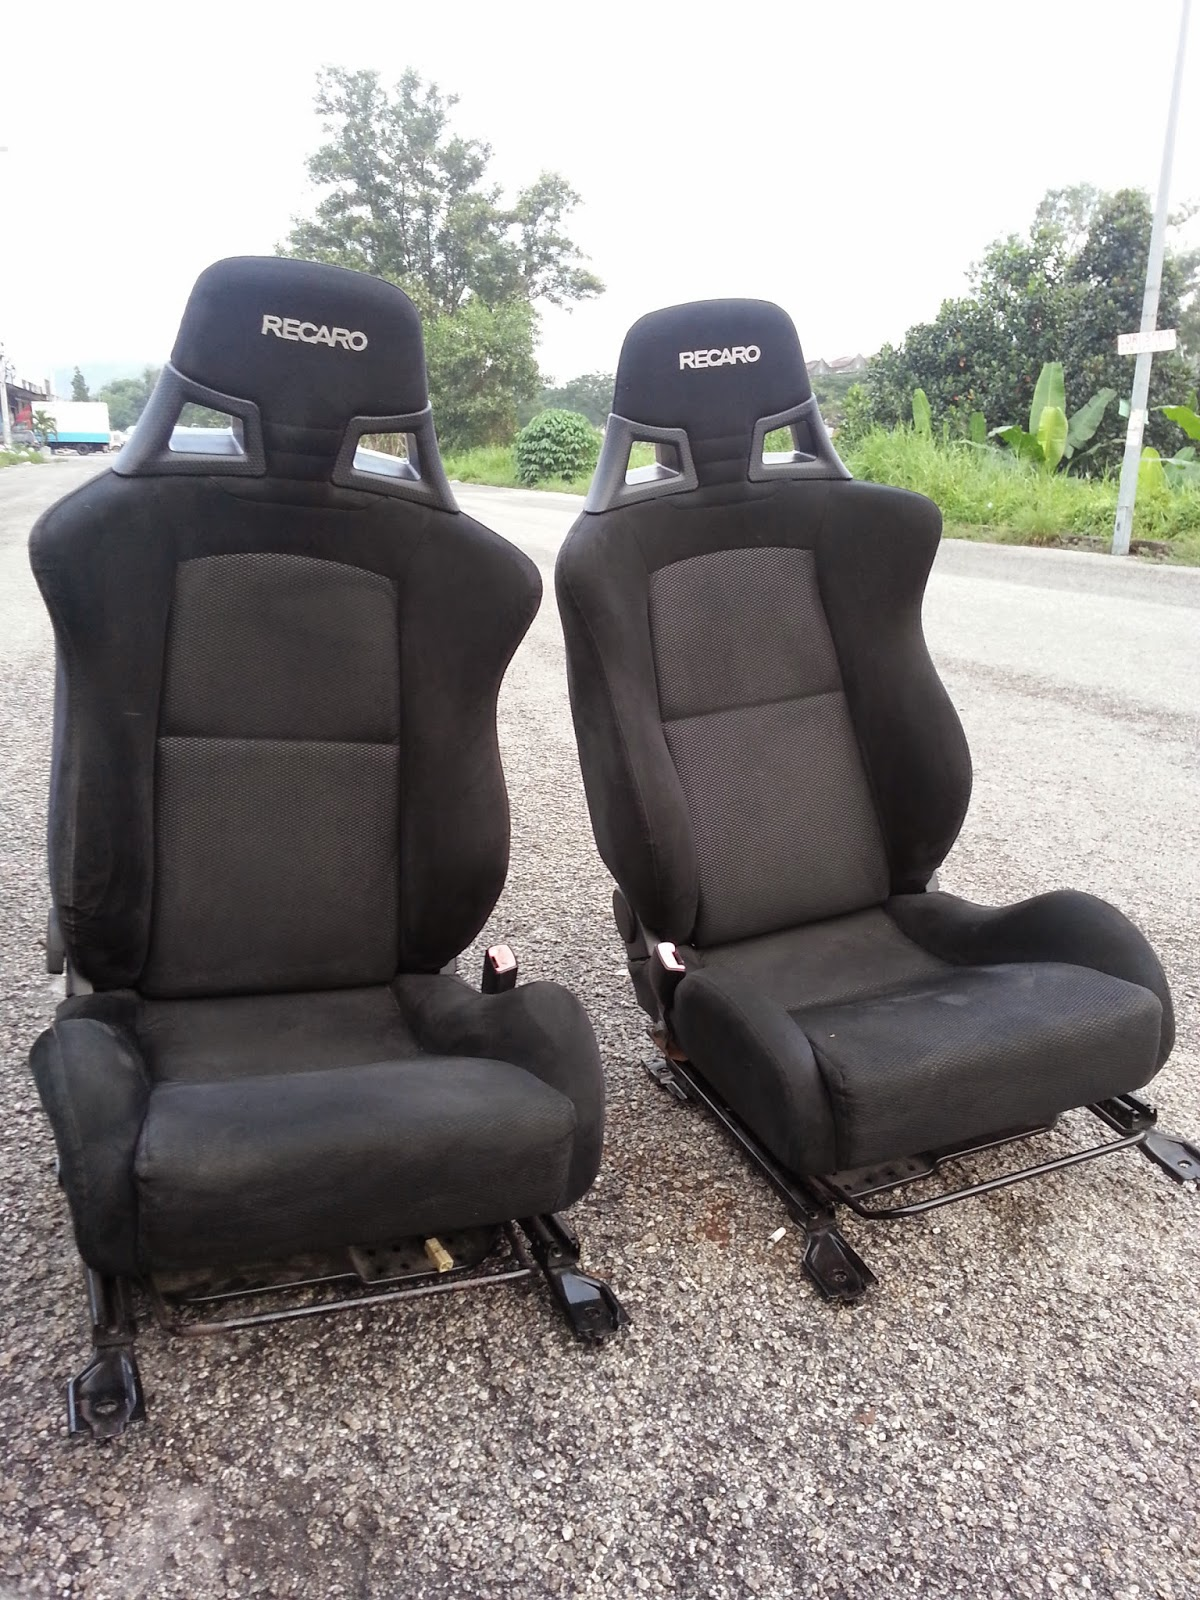 dingz garage seat recaro lancer evo x complete. Black Bedroom Furniture Sets. Home Design Ideas